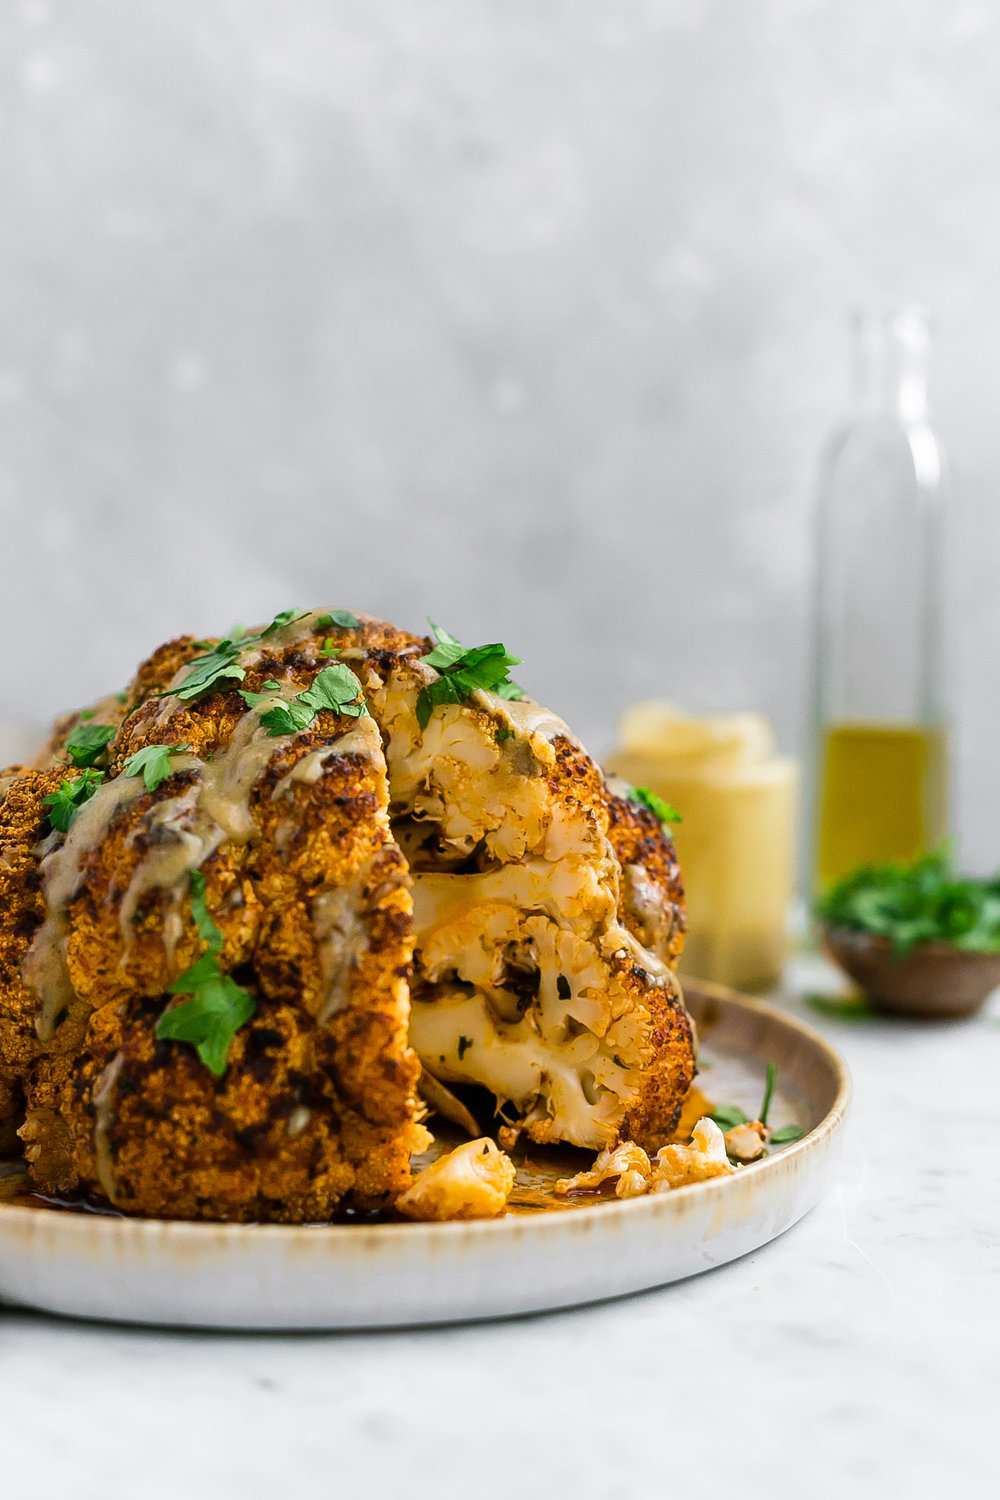 Whole Roasted Cauliflower with Tahini Sauce: tender, flavor-packed roasted cauliflower head with olive oil, generous spices, and a delicious tahini sauce. | TrufflesandTrends.com